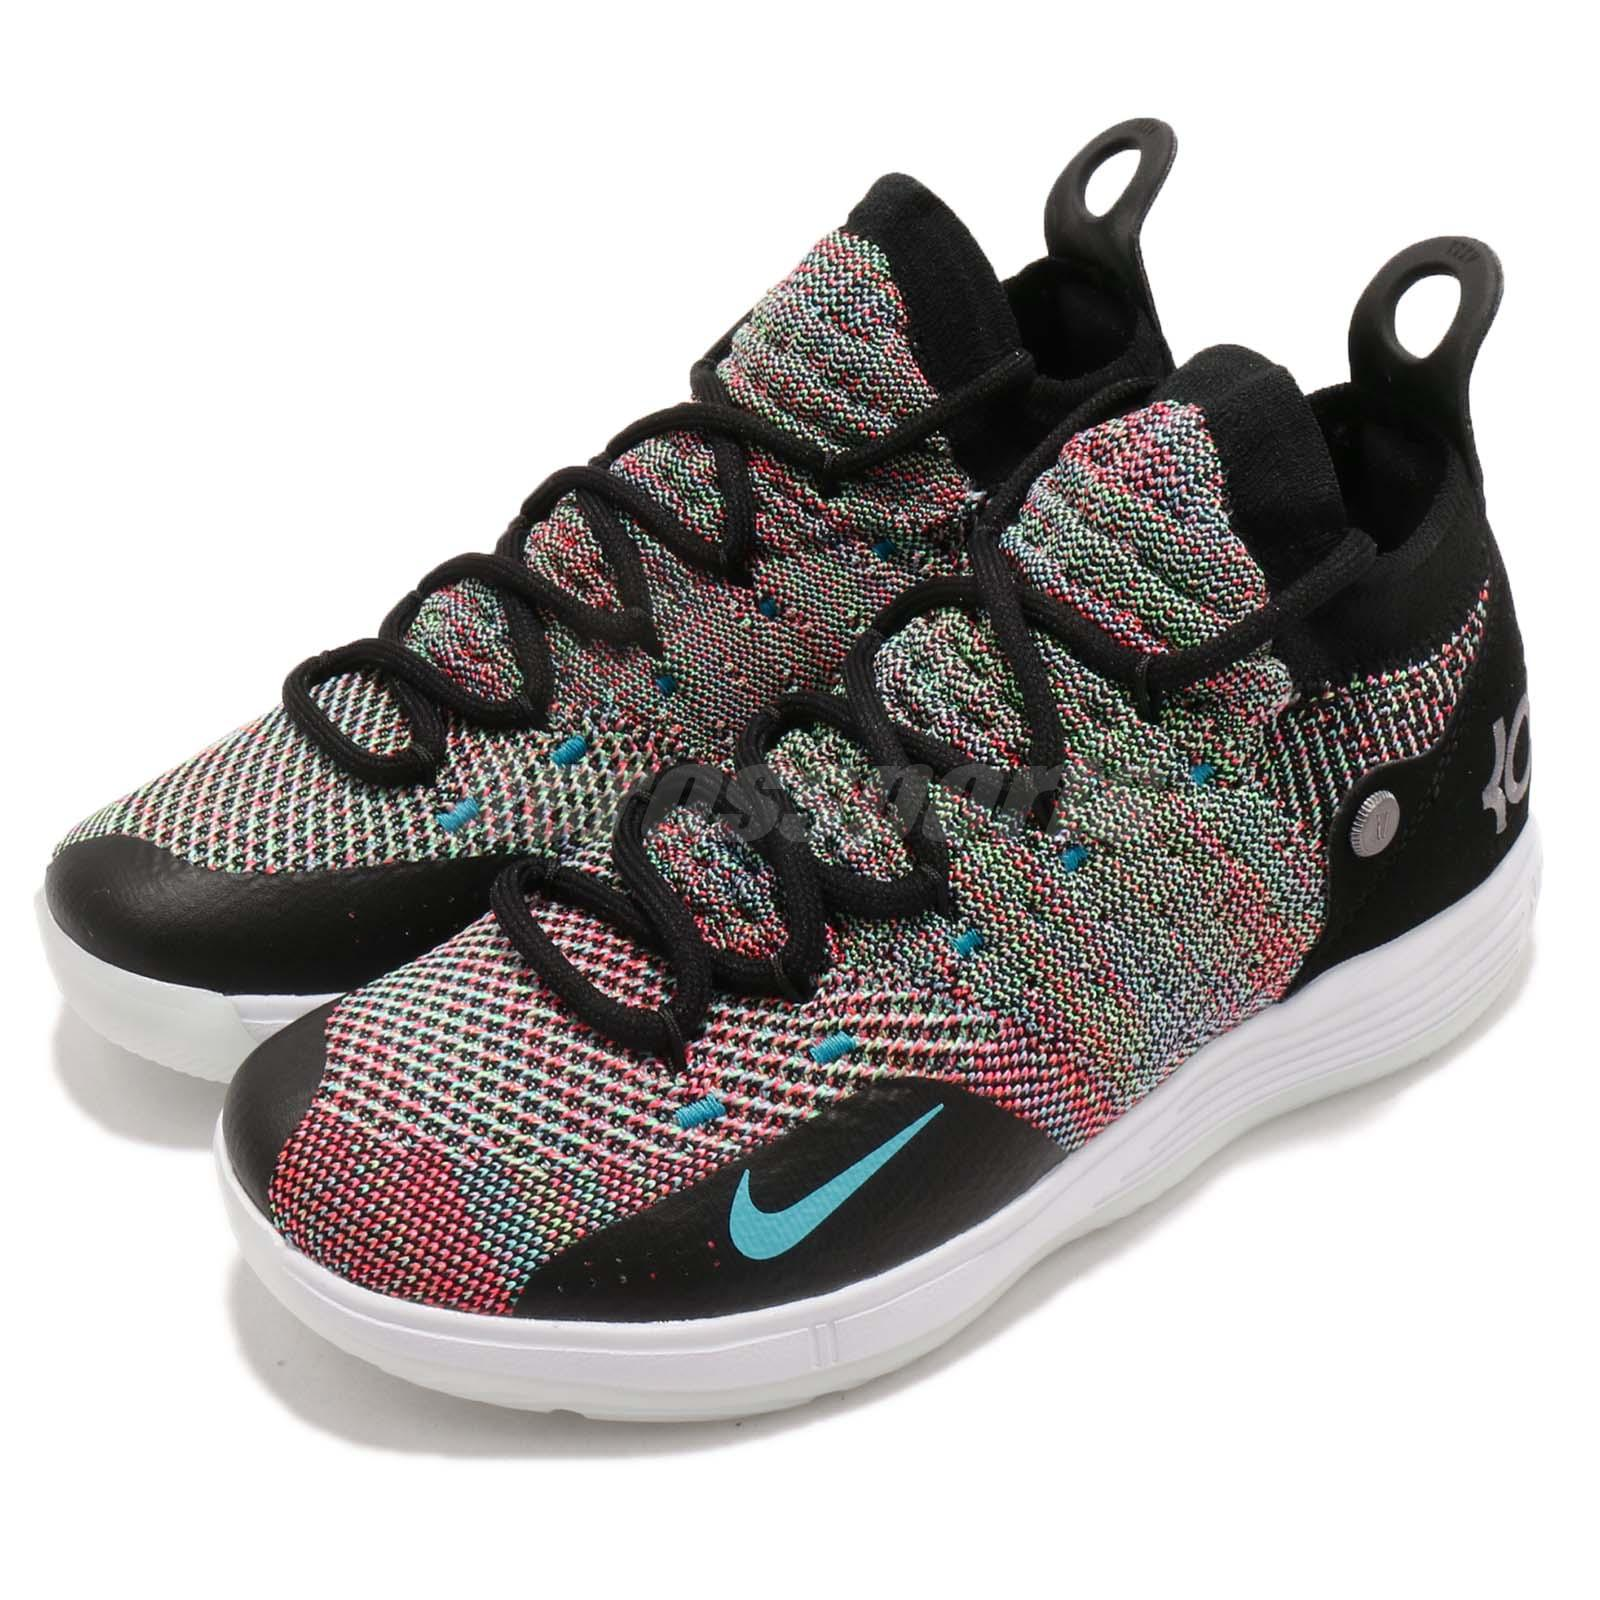 415abfb3f48 Details about Nike KD 11 GS XI Kevin Durant Multi Color Kid Youth Women  Shoes AH3465-001